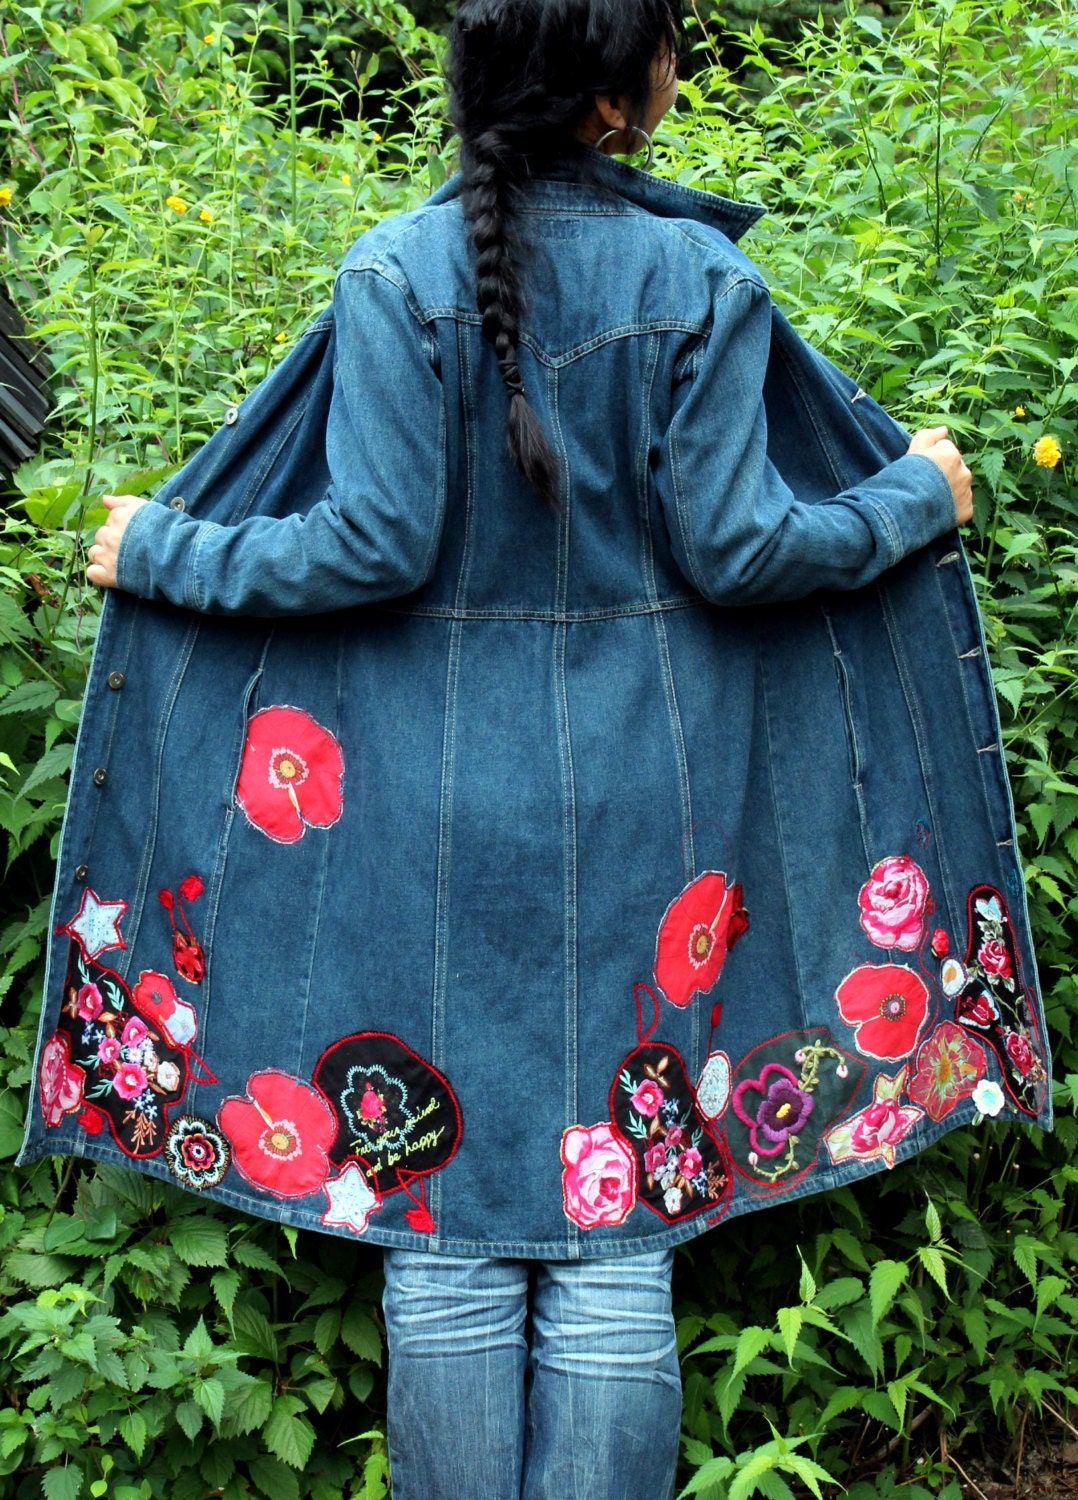 Crazy Floral Appliqued Jeans Coat Recycled And Reused